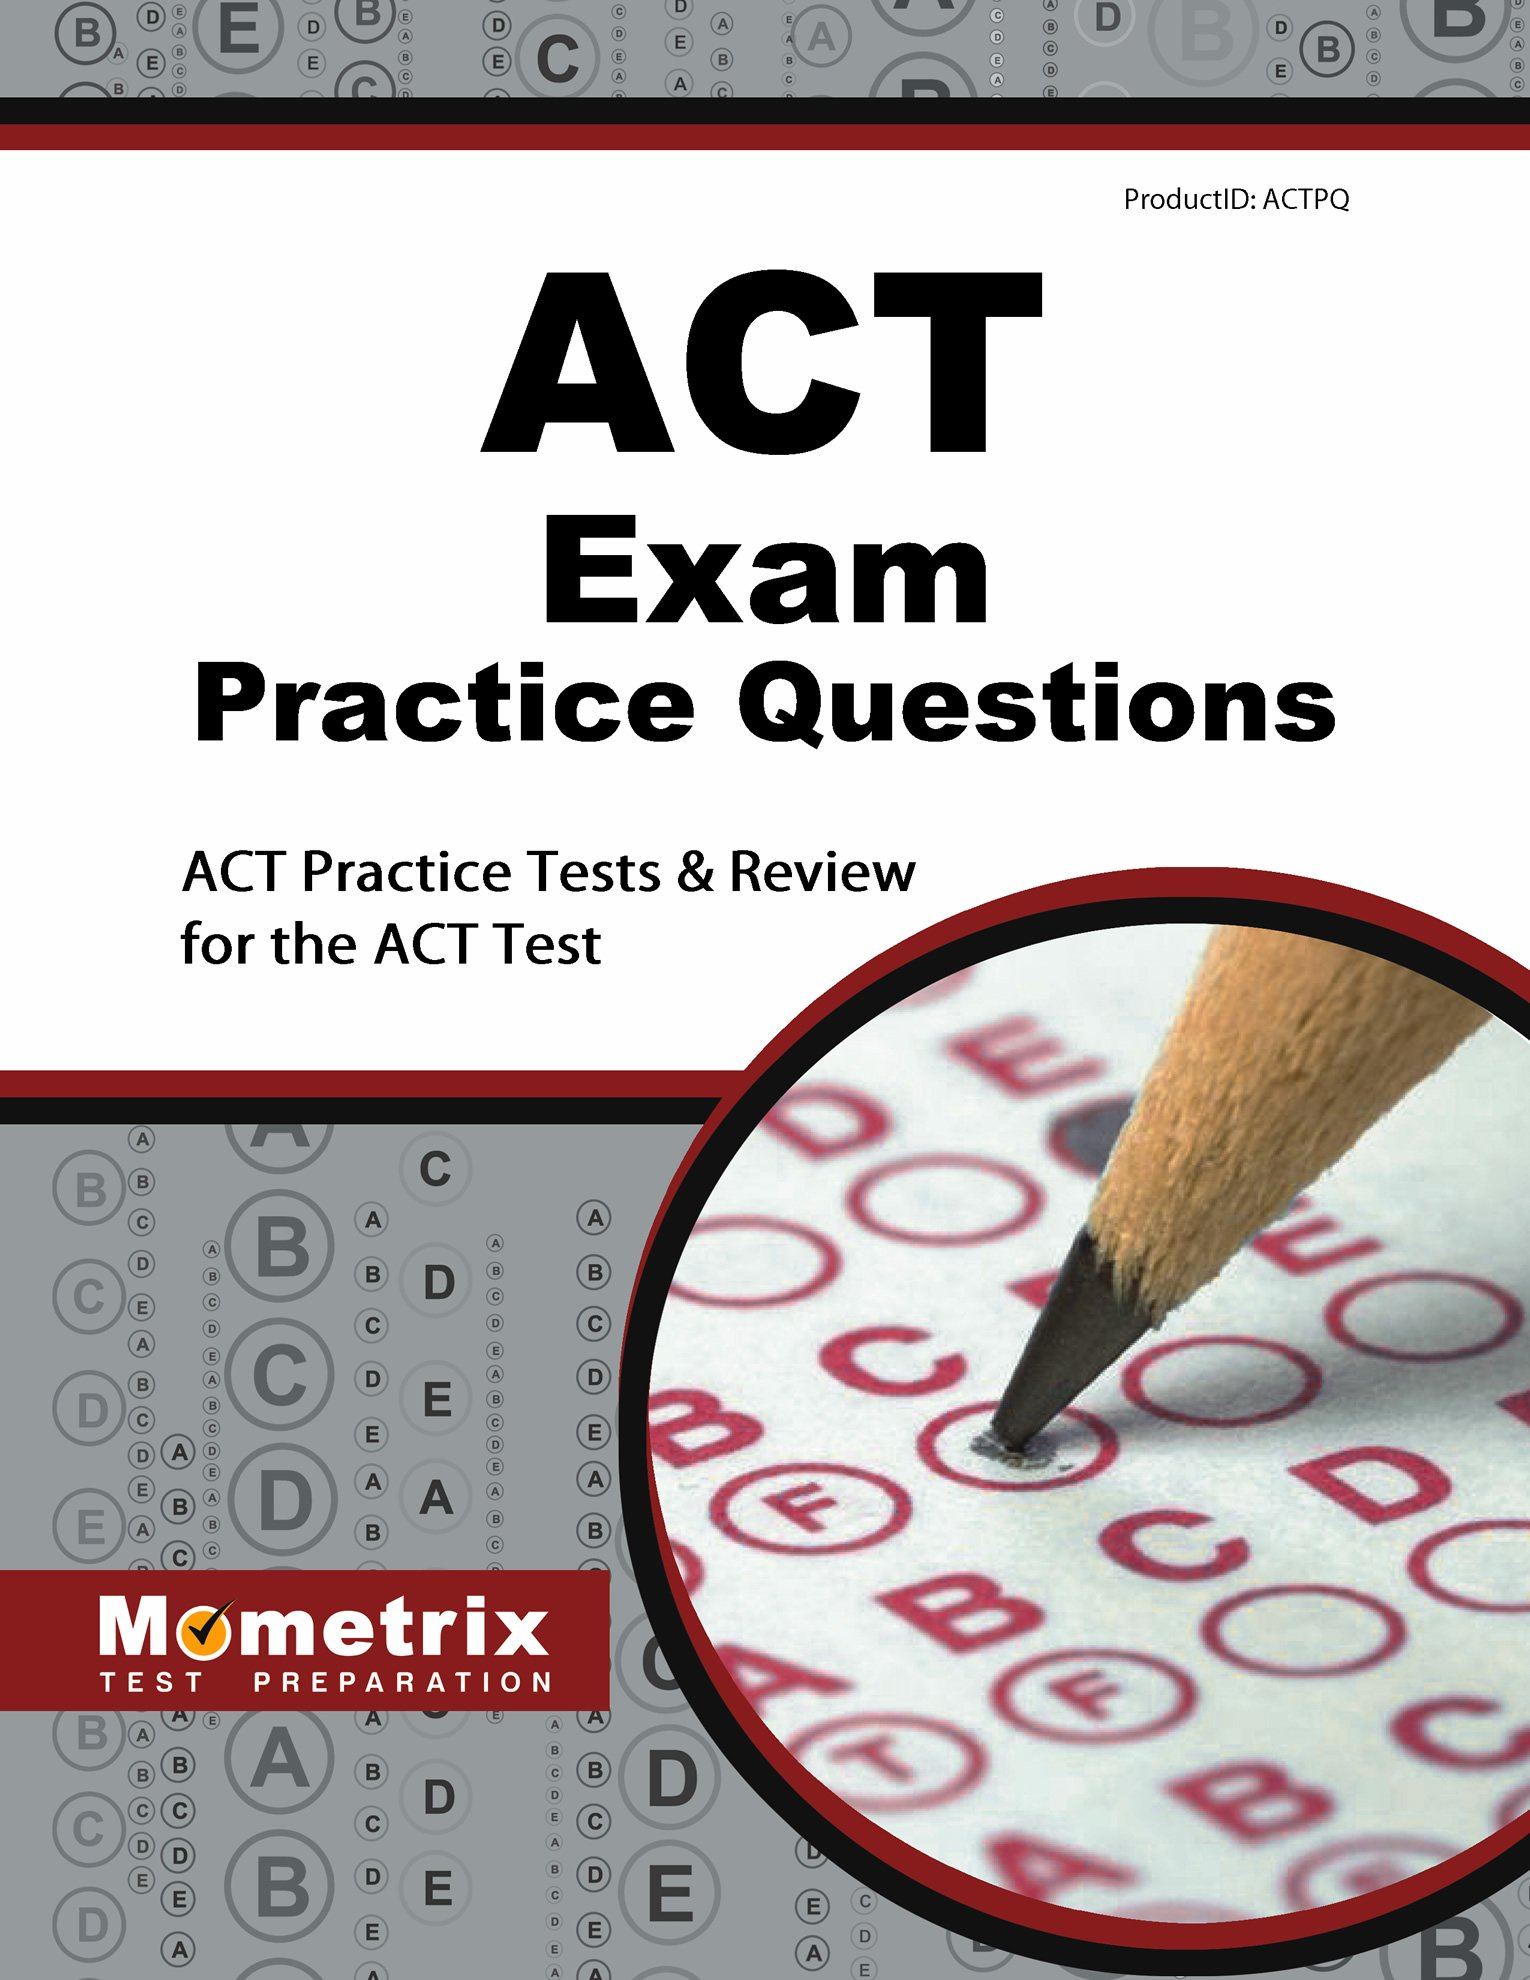 ACT Exam Practice Questions Review product image